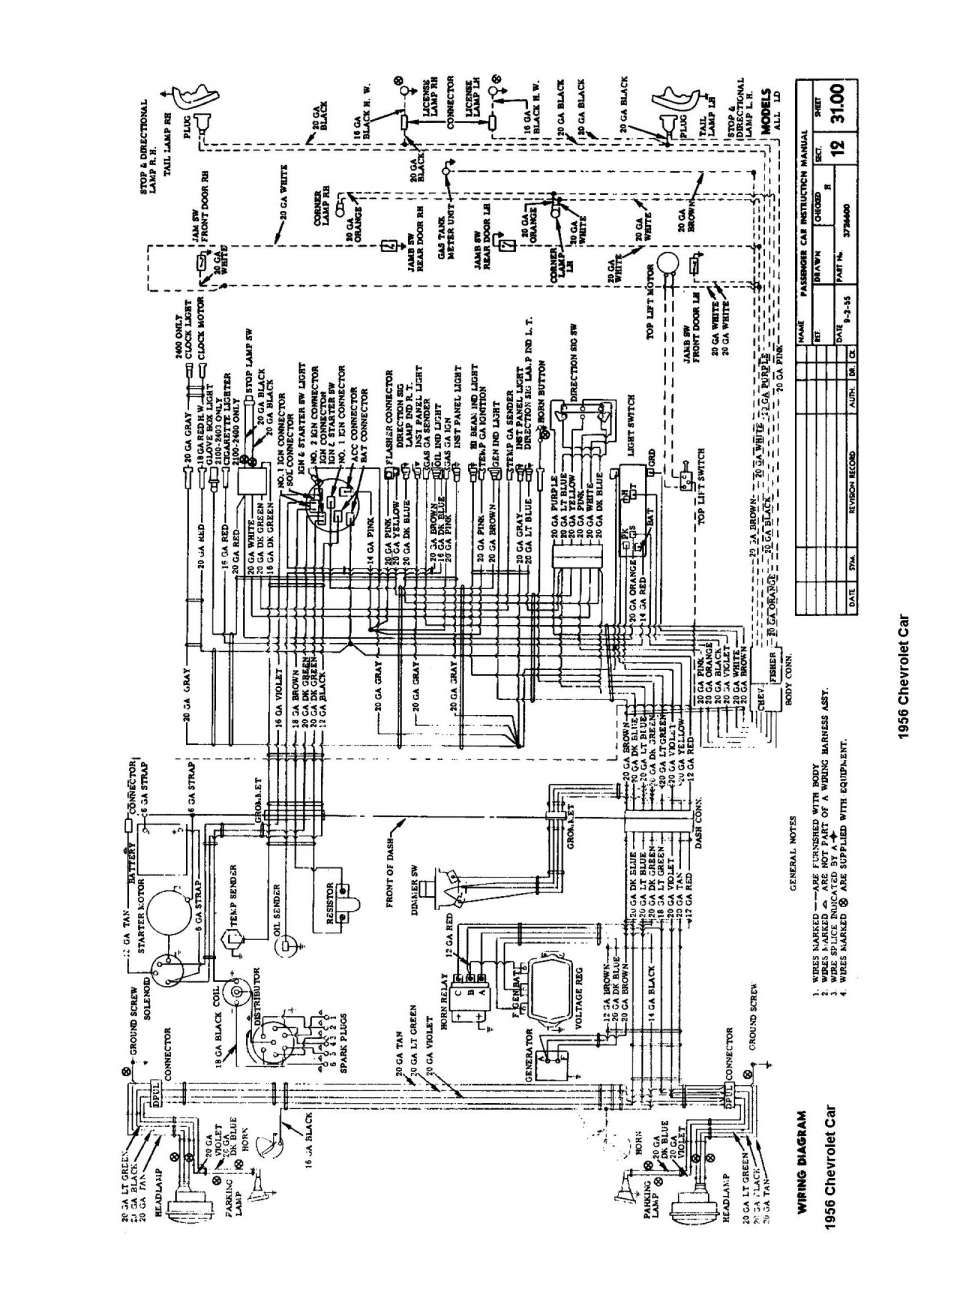 1957 ford ignition wiring diagram 1956 ford safety switch wiring diagram e3 wiring diagram  1956 ford safety switch wiring diagram